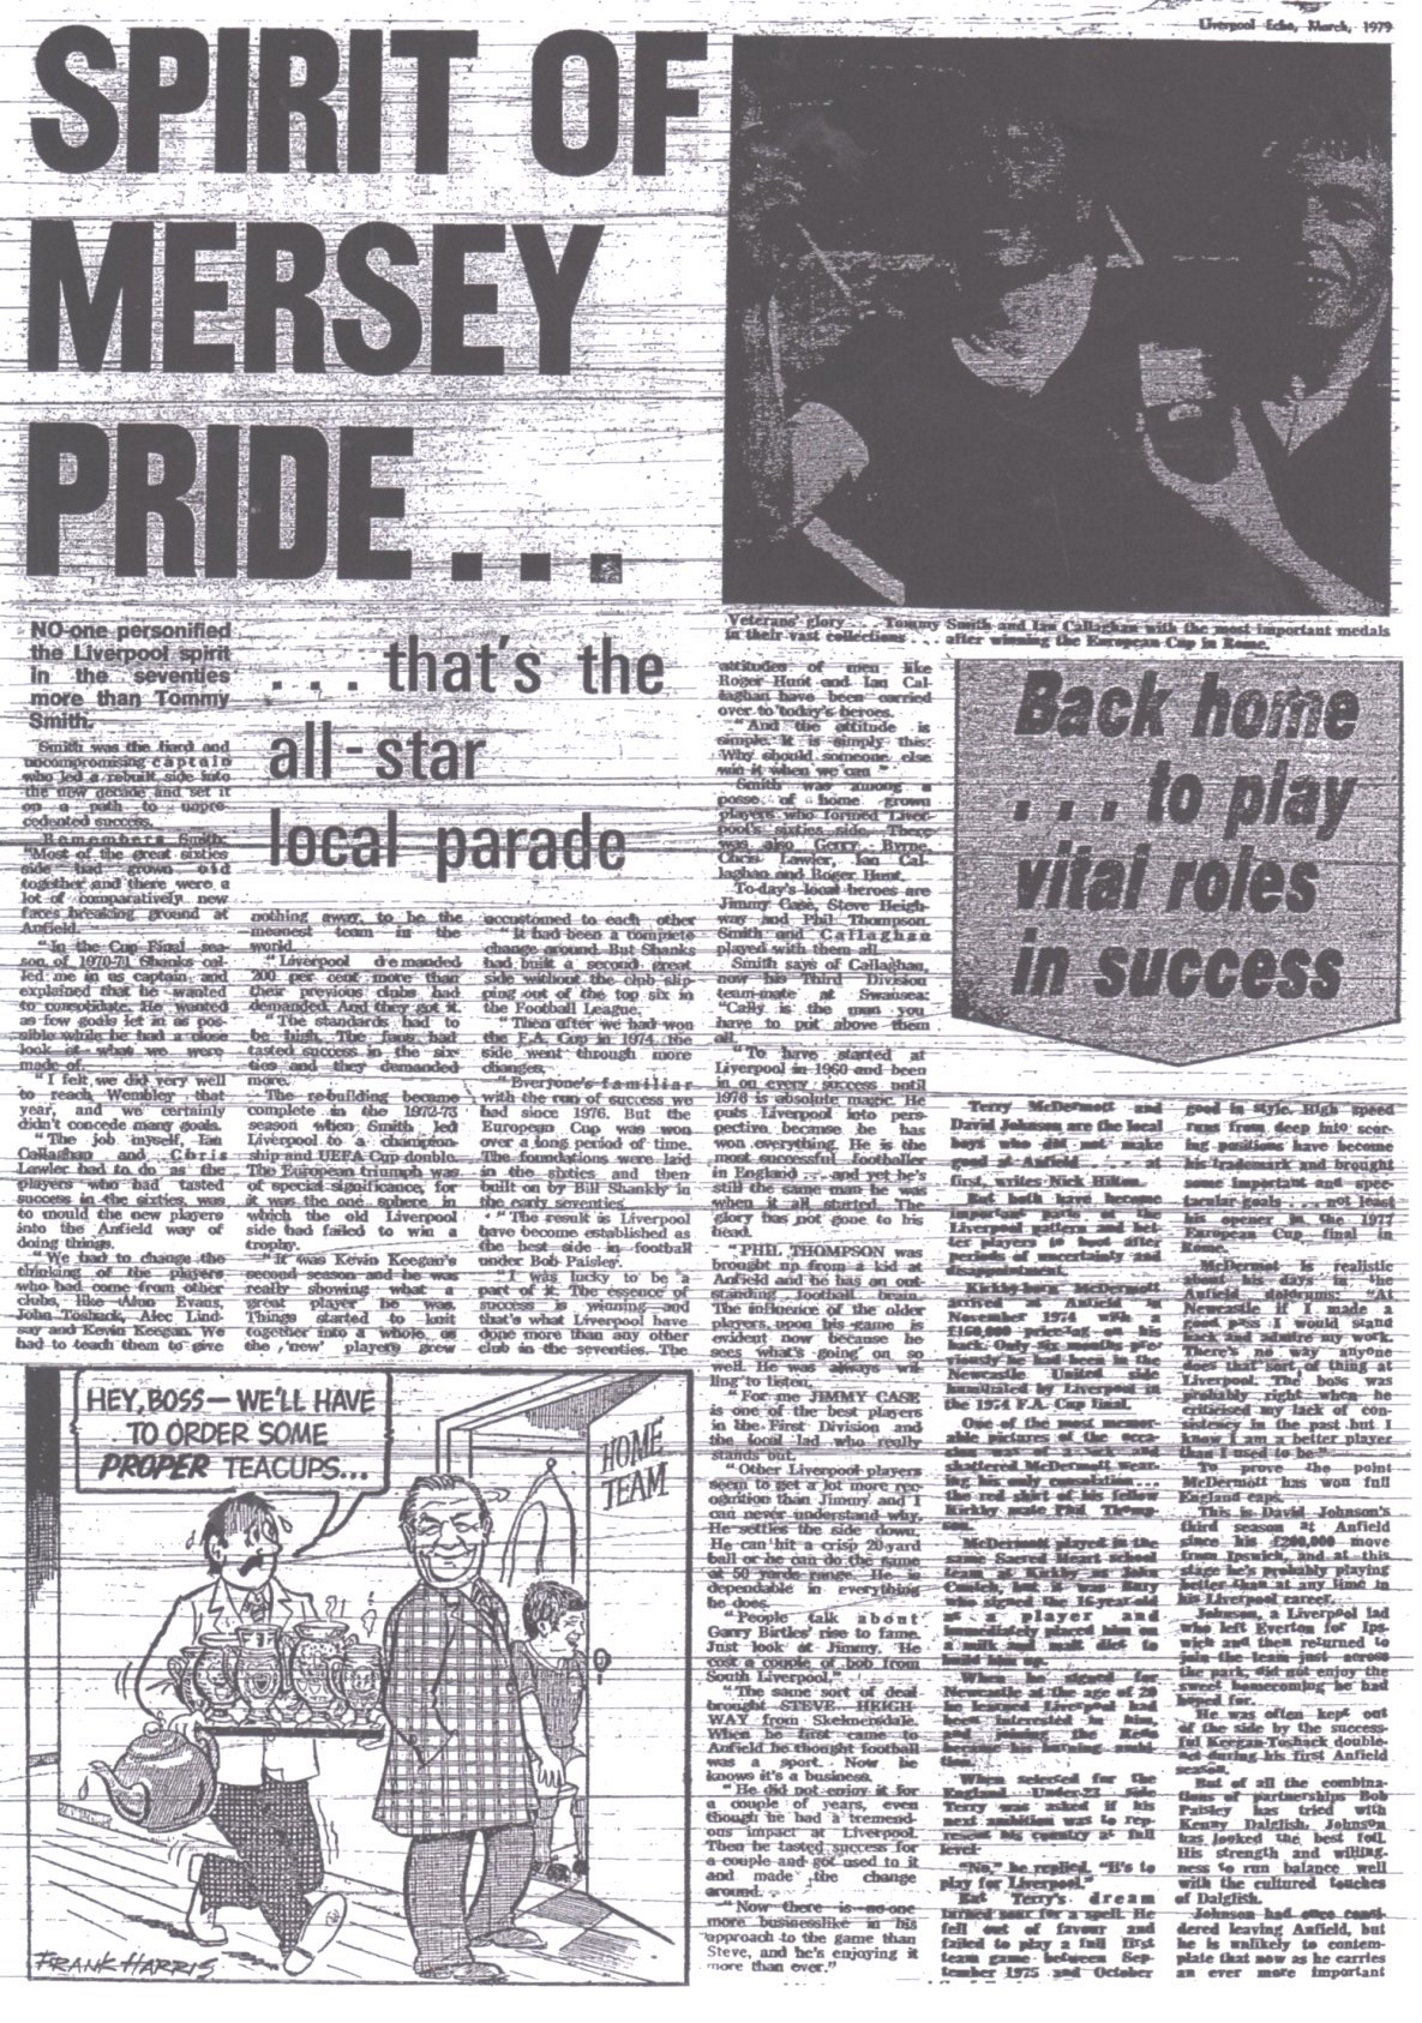 Spirit of Mersey pride - 20 March 1979